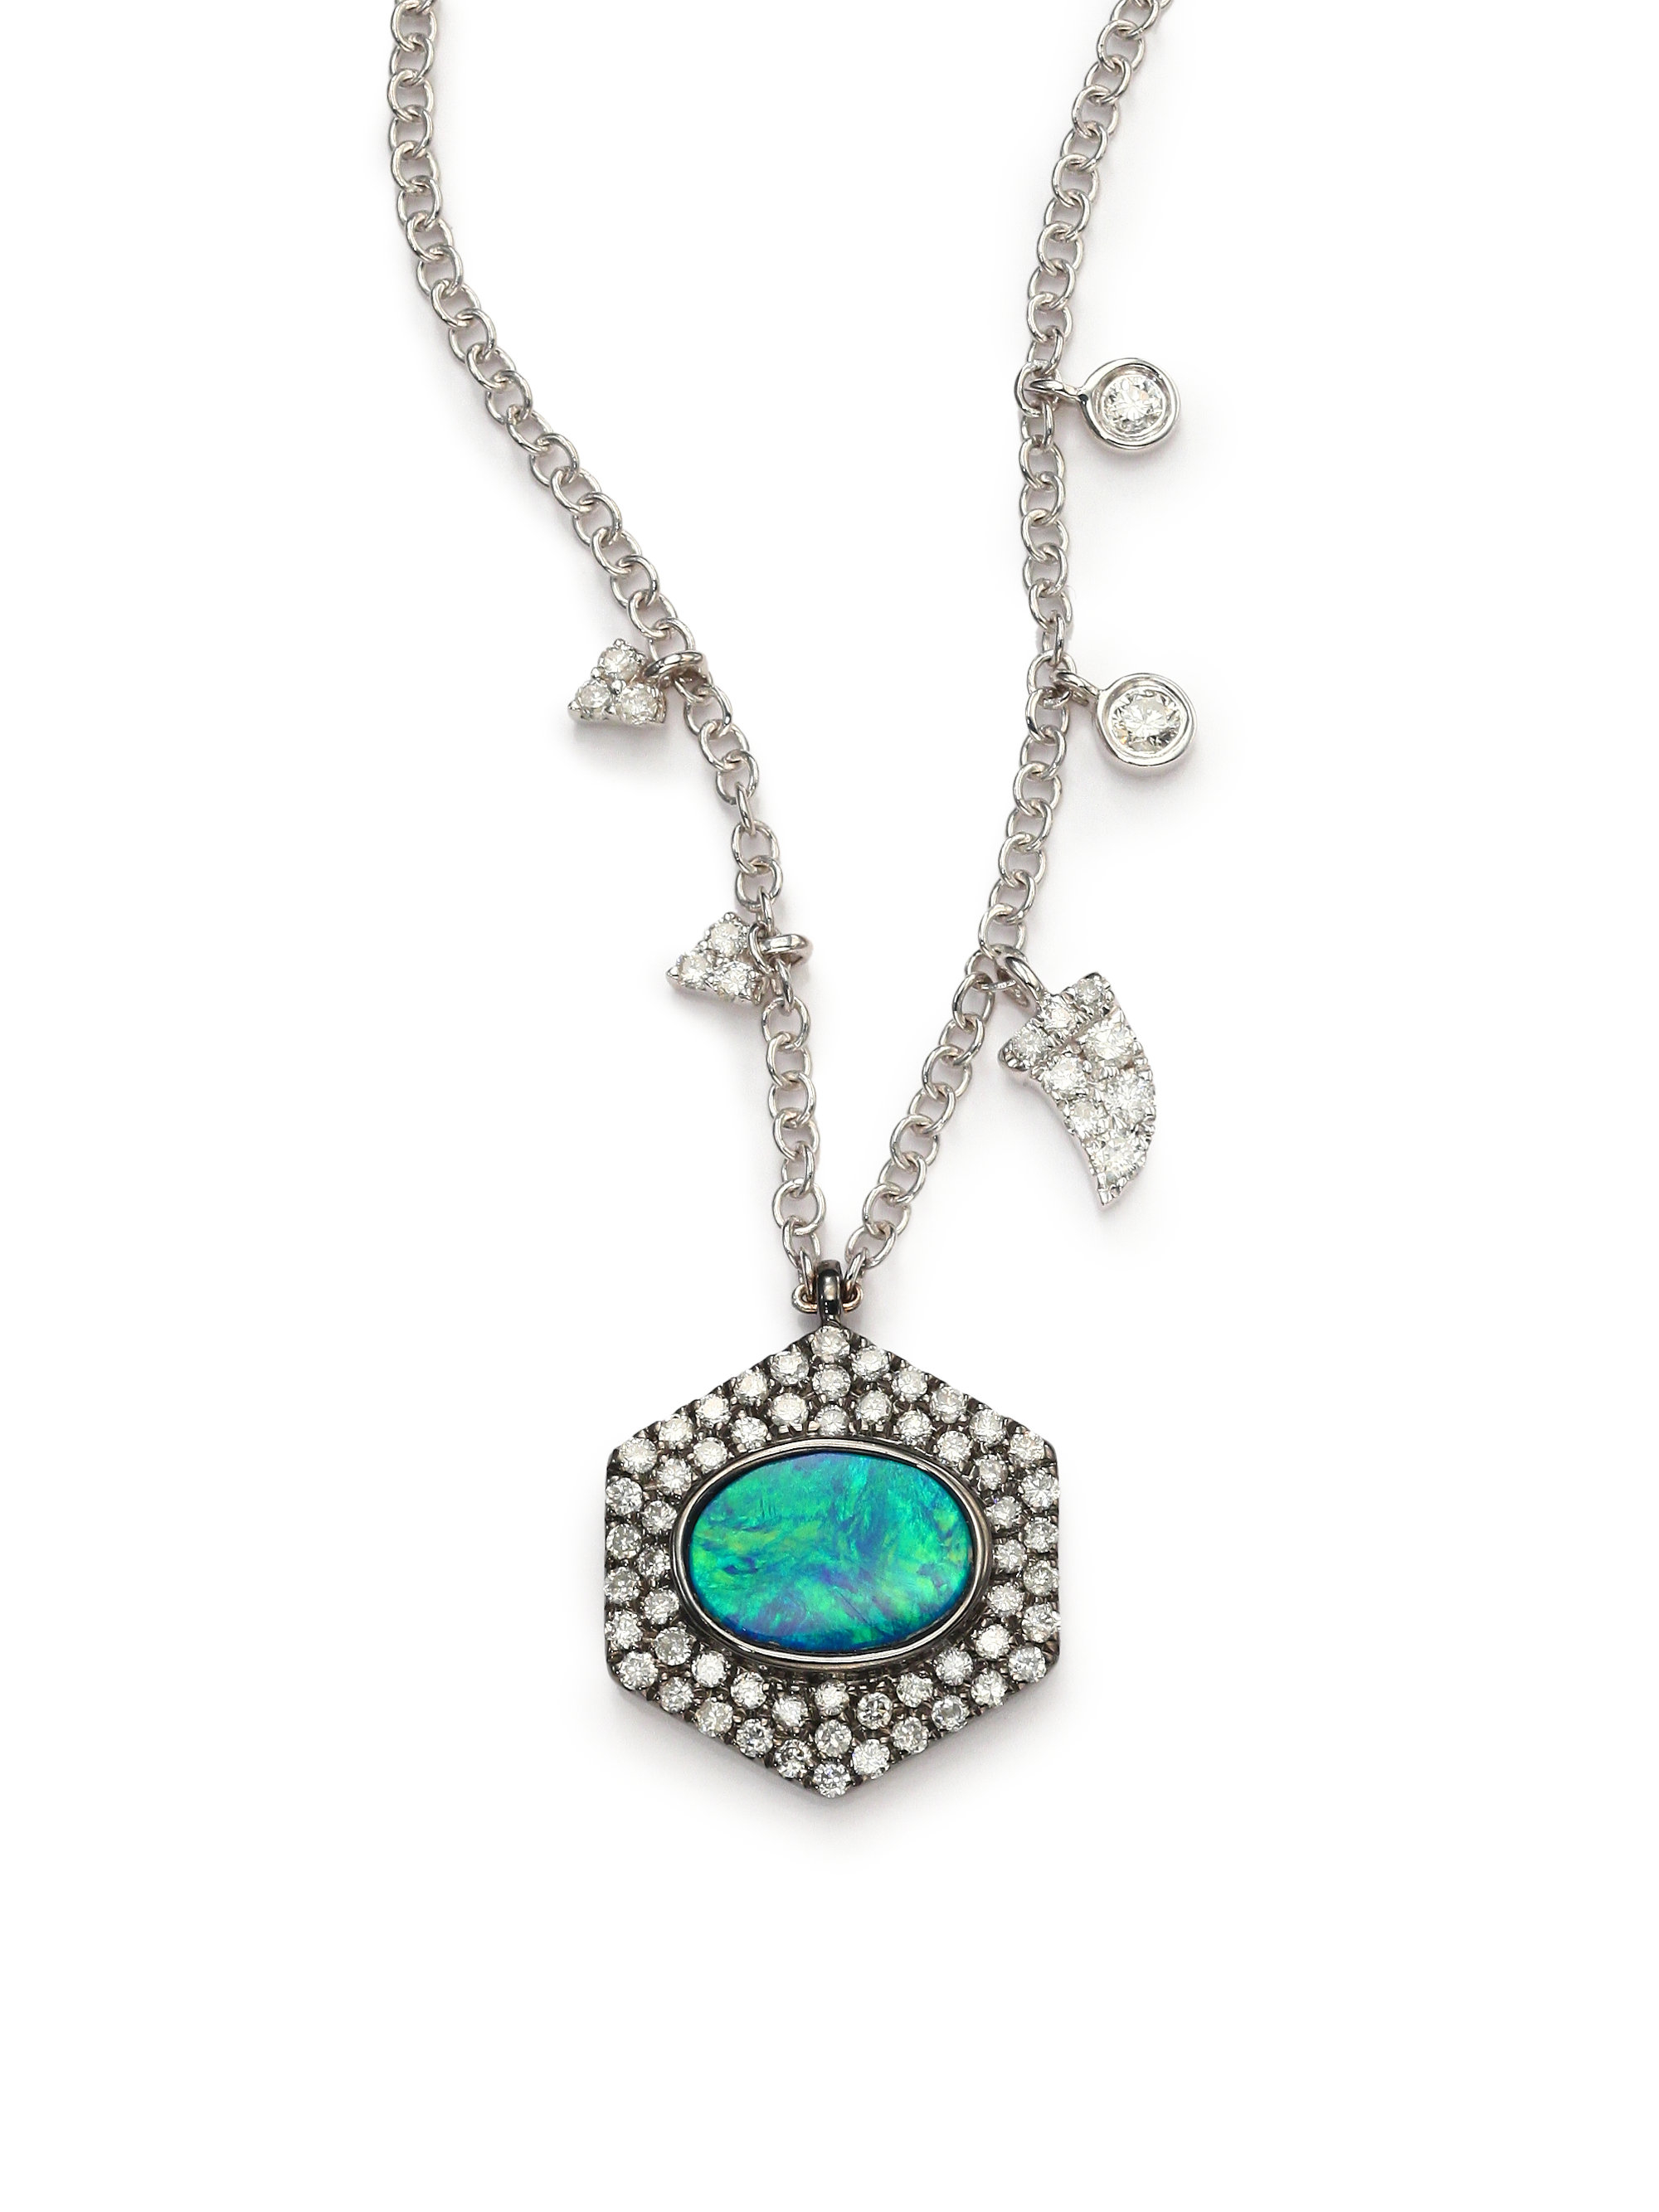 Style Sketches furthermore Macys Us Diamond Teardrop Pendant Necklace In 14k Yellow Or White Gold 14 Ct Tw White Gold furthermore Meira T Opal Diamond 14k White Gold Hexagon Pendant Necklace White Gold Turquoise further Cute Crush Quotes Tumblr For Him About together with 16278000 Golden Girls Sketch. on work skirts